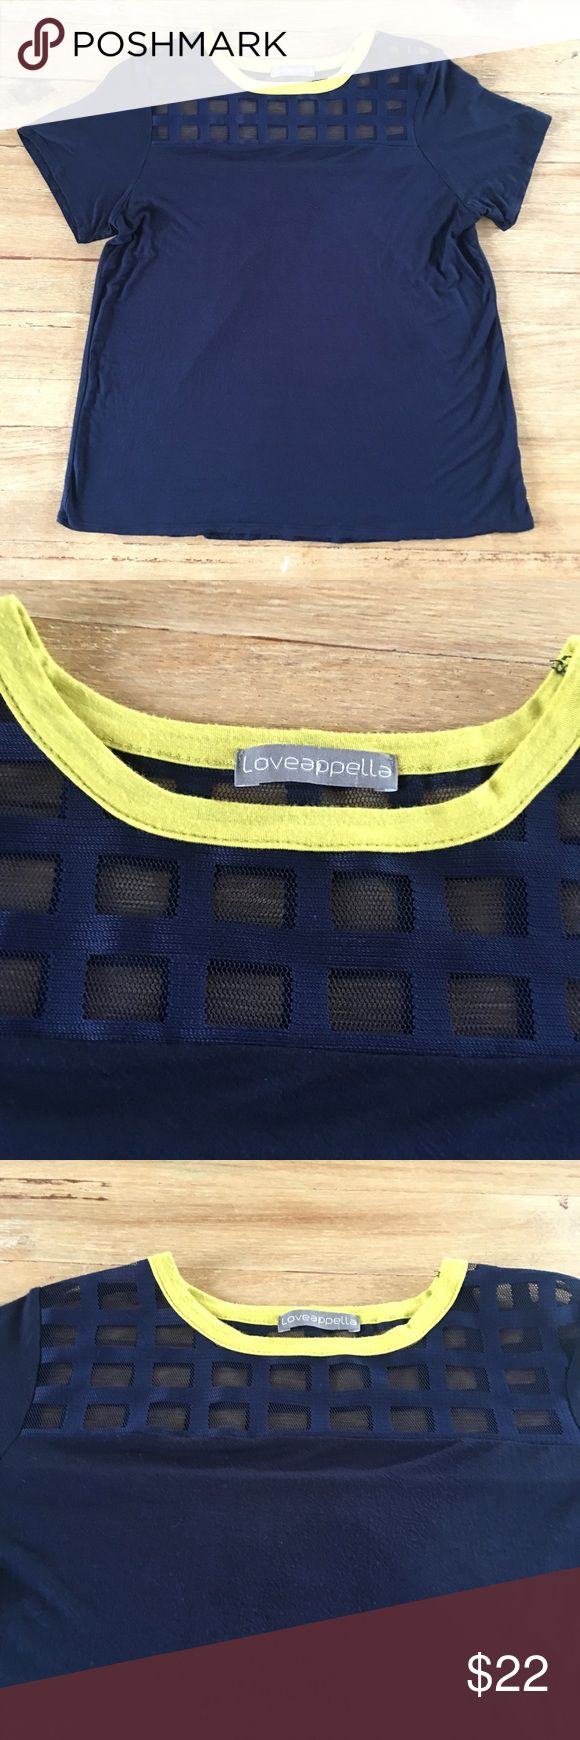 """Leveappella for Stitchfix. Navy /neon yellow top Loveappella for Stitchfix.   Mesh detail at top with bright yellow trim.   Length is approx 26"""" and chest is approx 18.5"""" across laying flat. Loveappella Tops"""